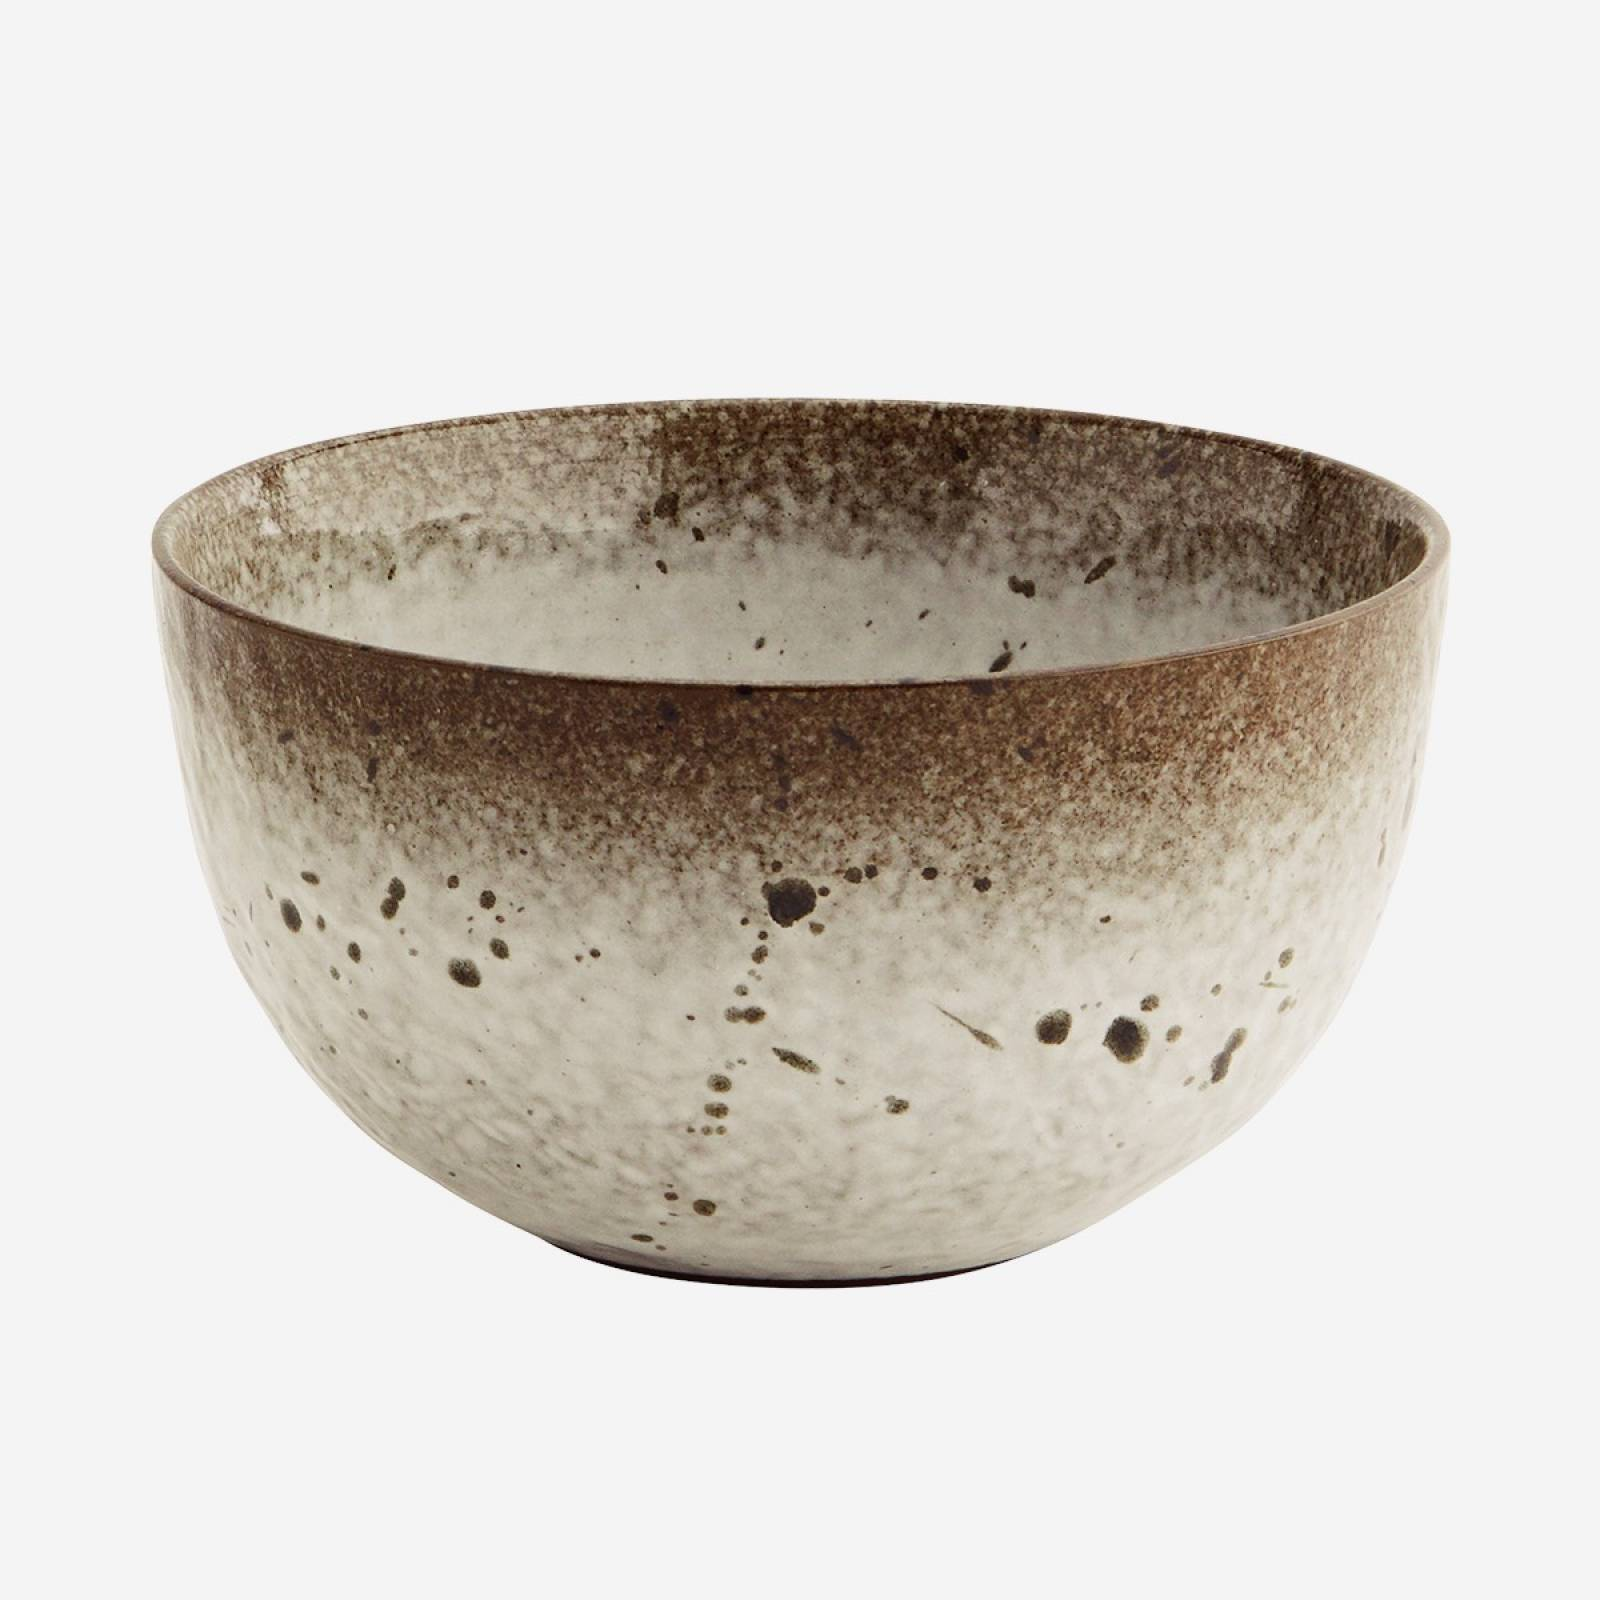 Speckled Stoneware Bowl In Brown & White